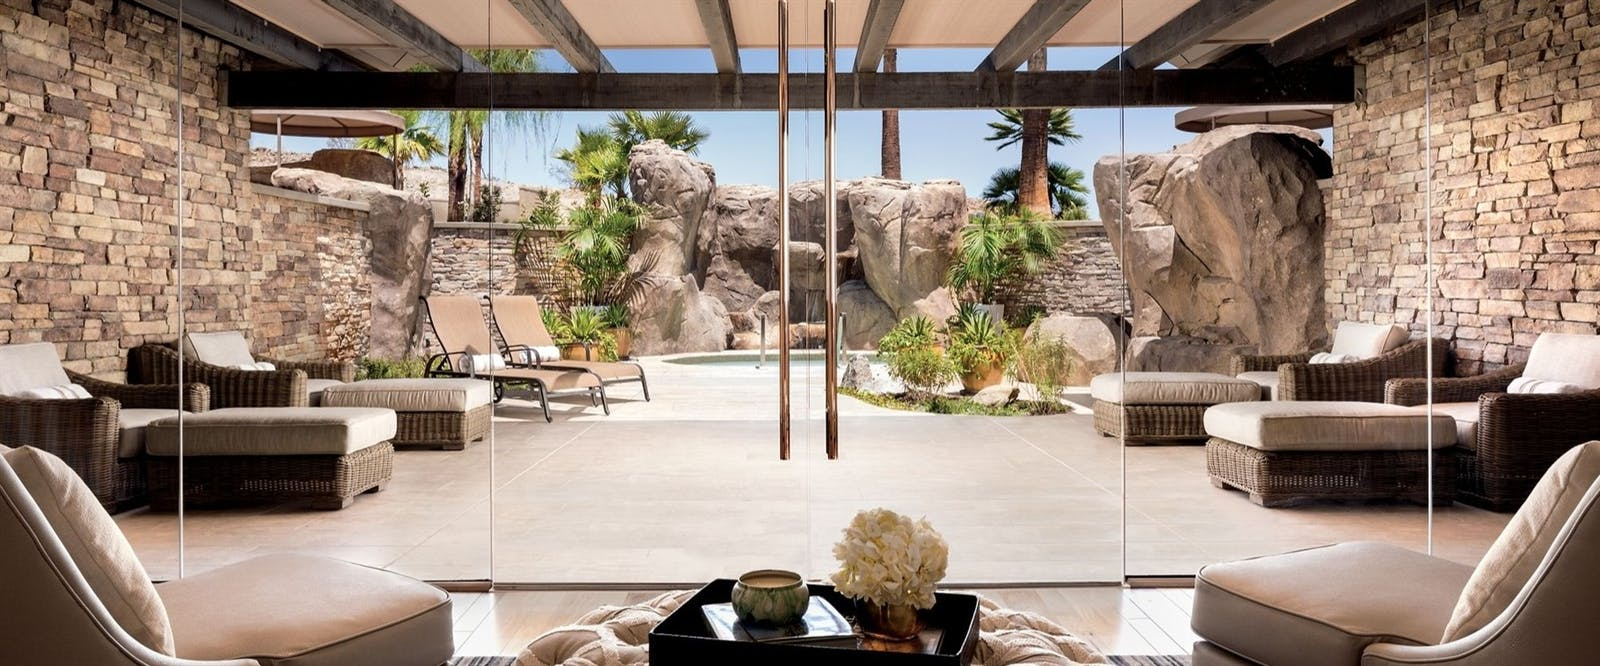 Spa at The Ritz-Carlton, Rancho Mirage